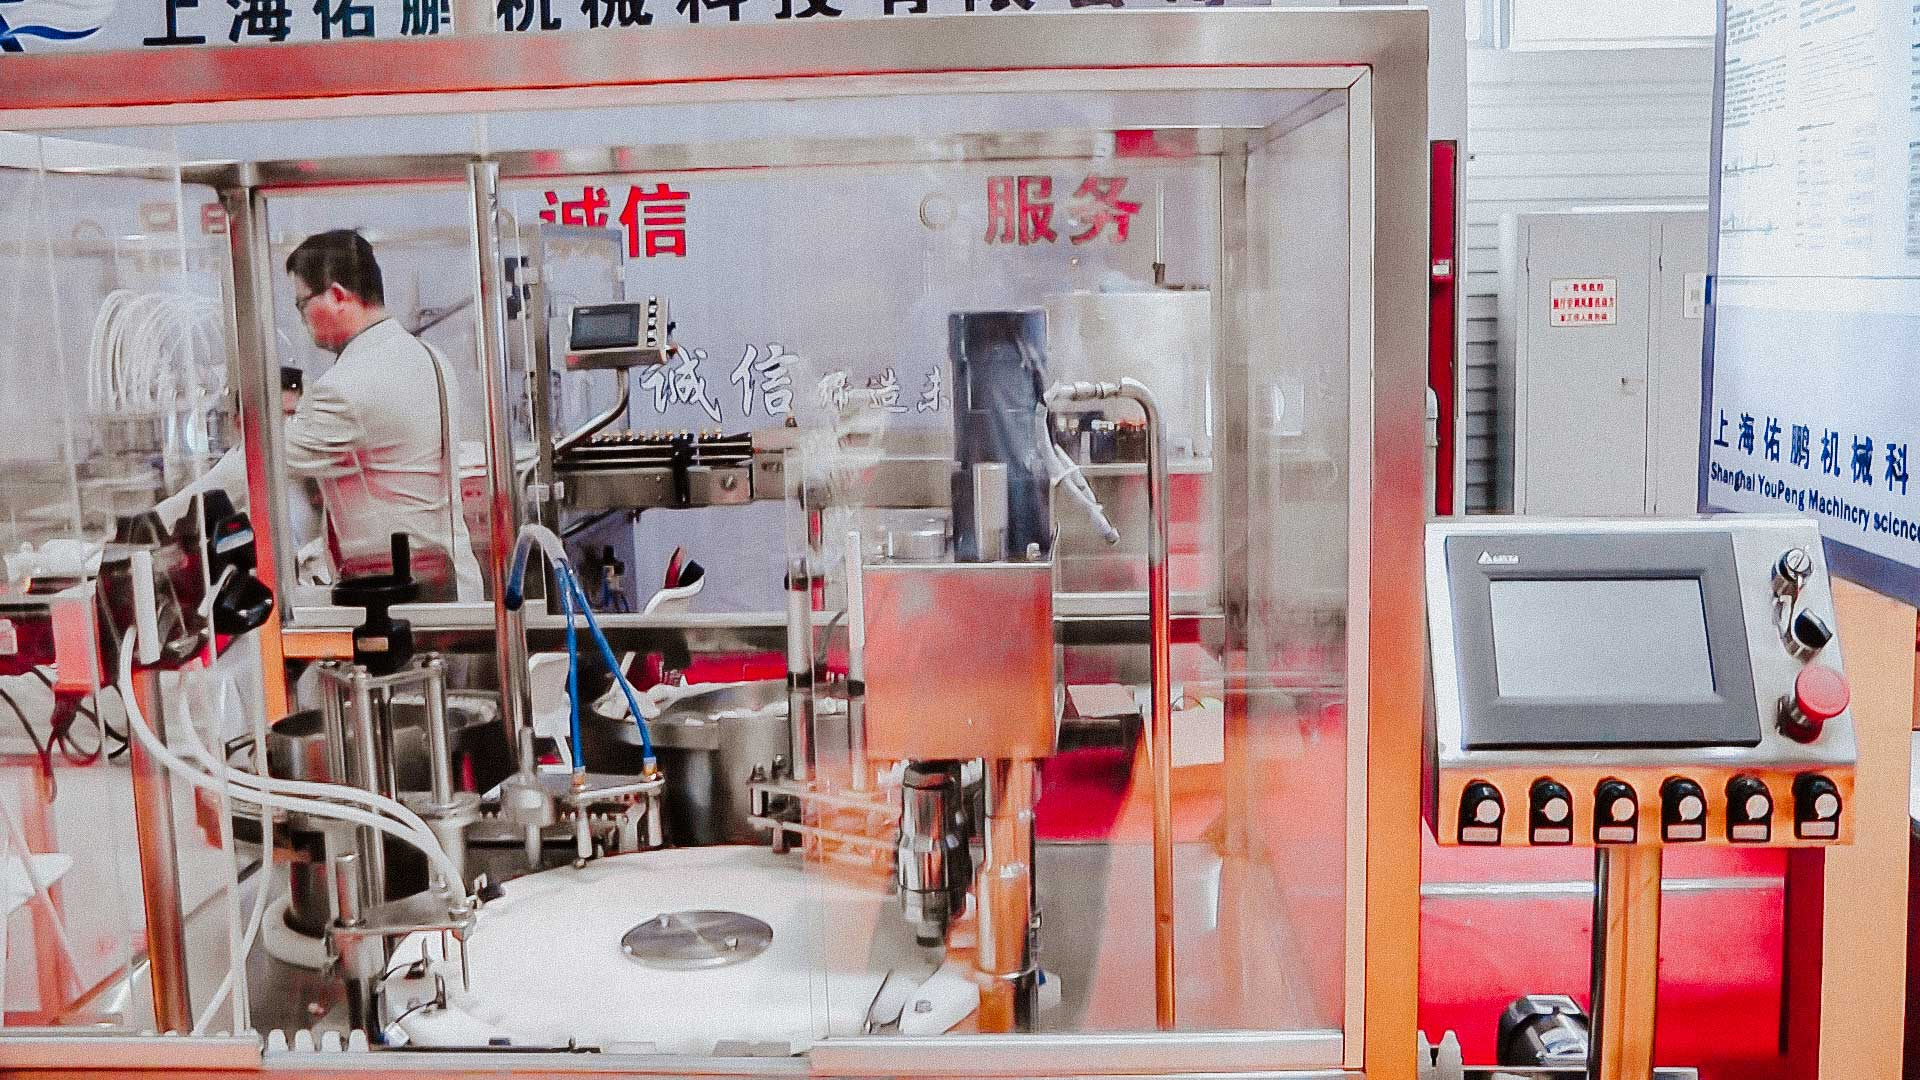 Equipment for filling and capping plastic bottles with pharmaceutical liquids